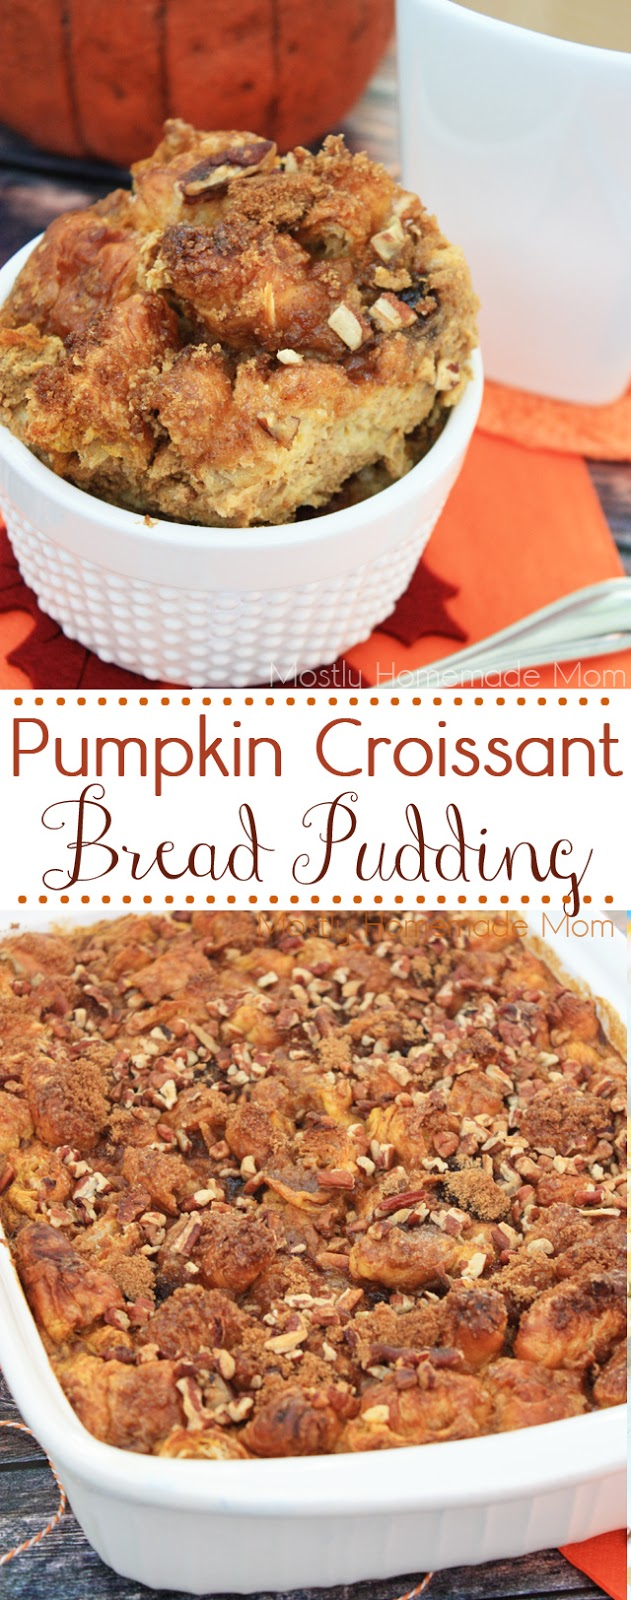 Pumpkin Best Bread Pudding Recipe